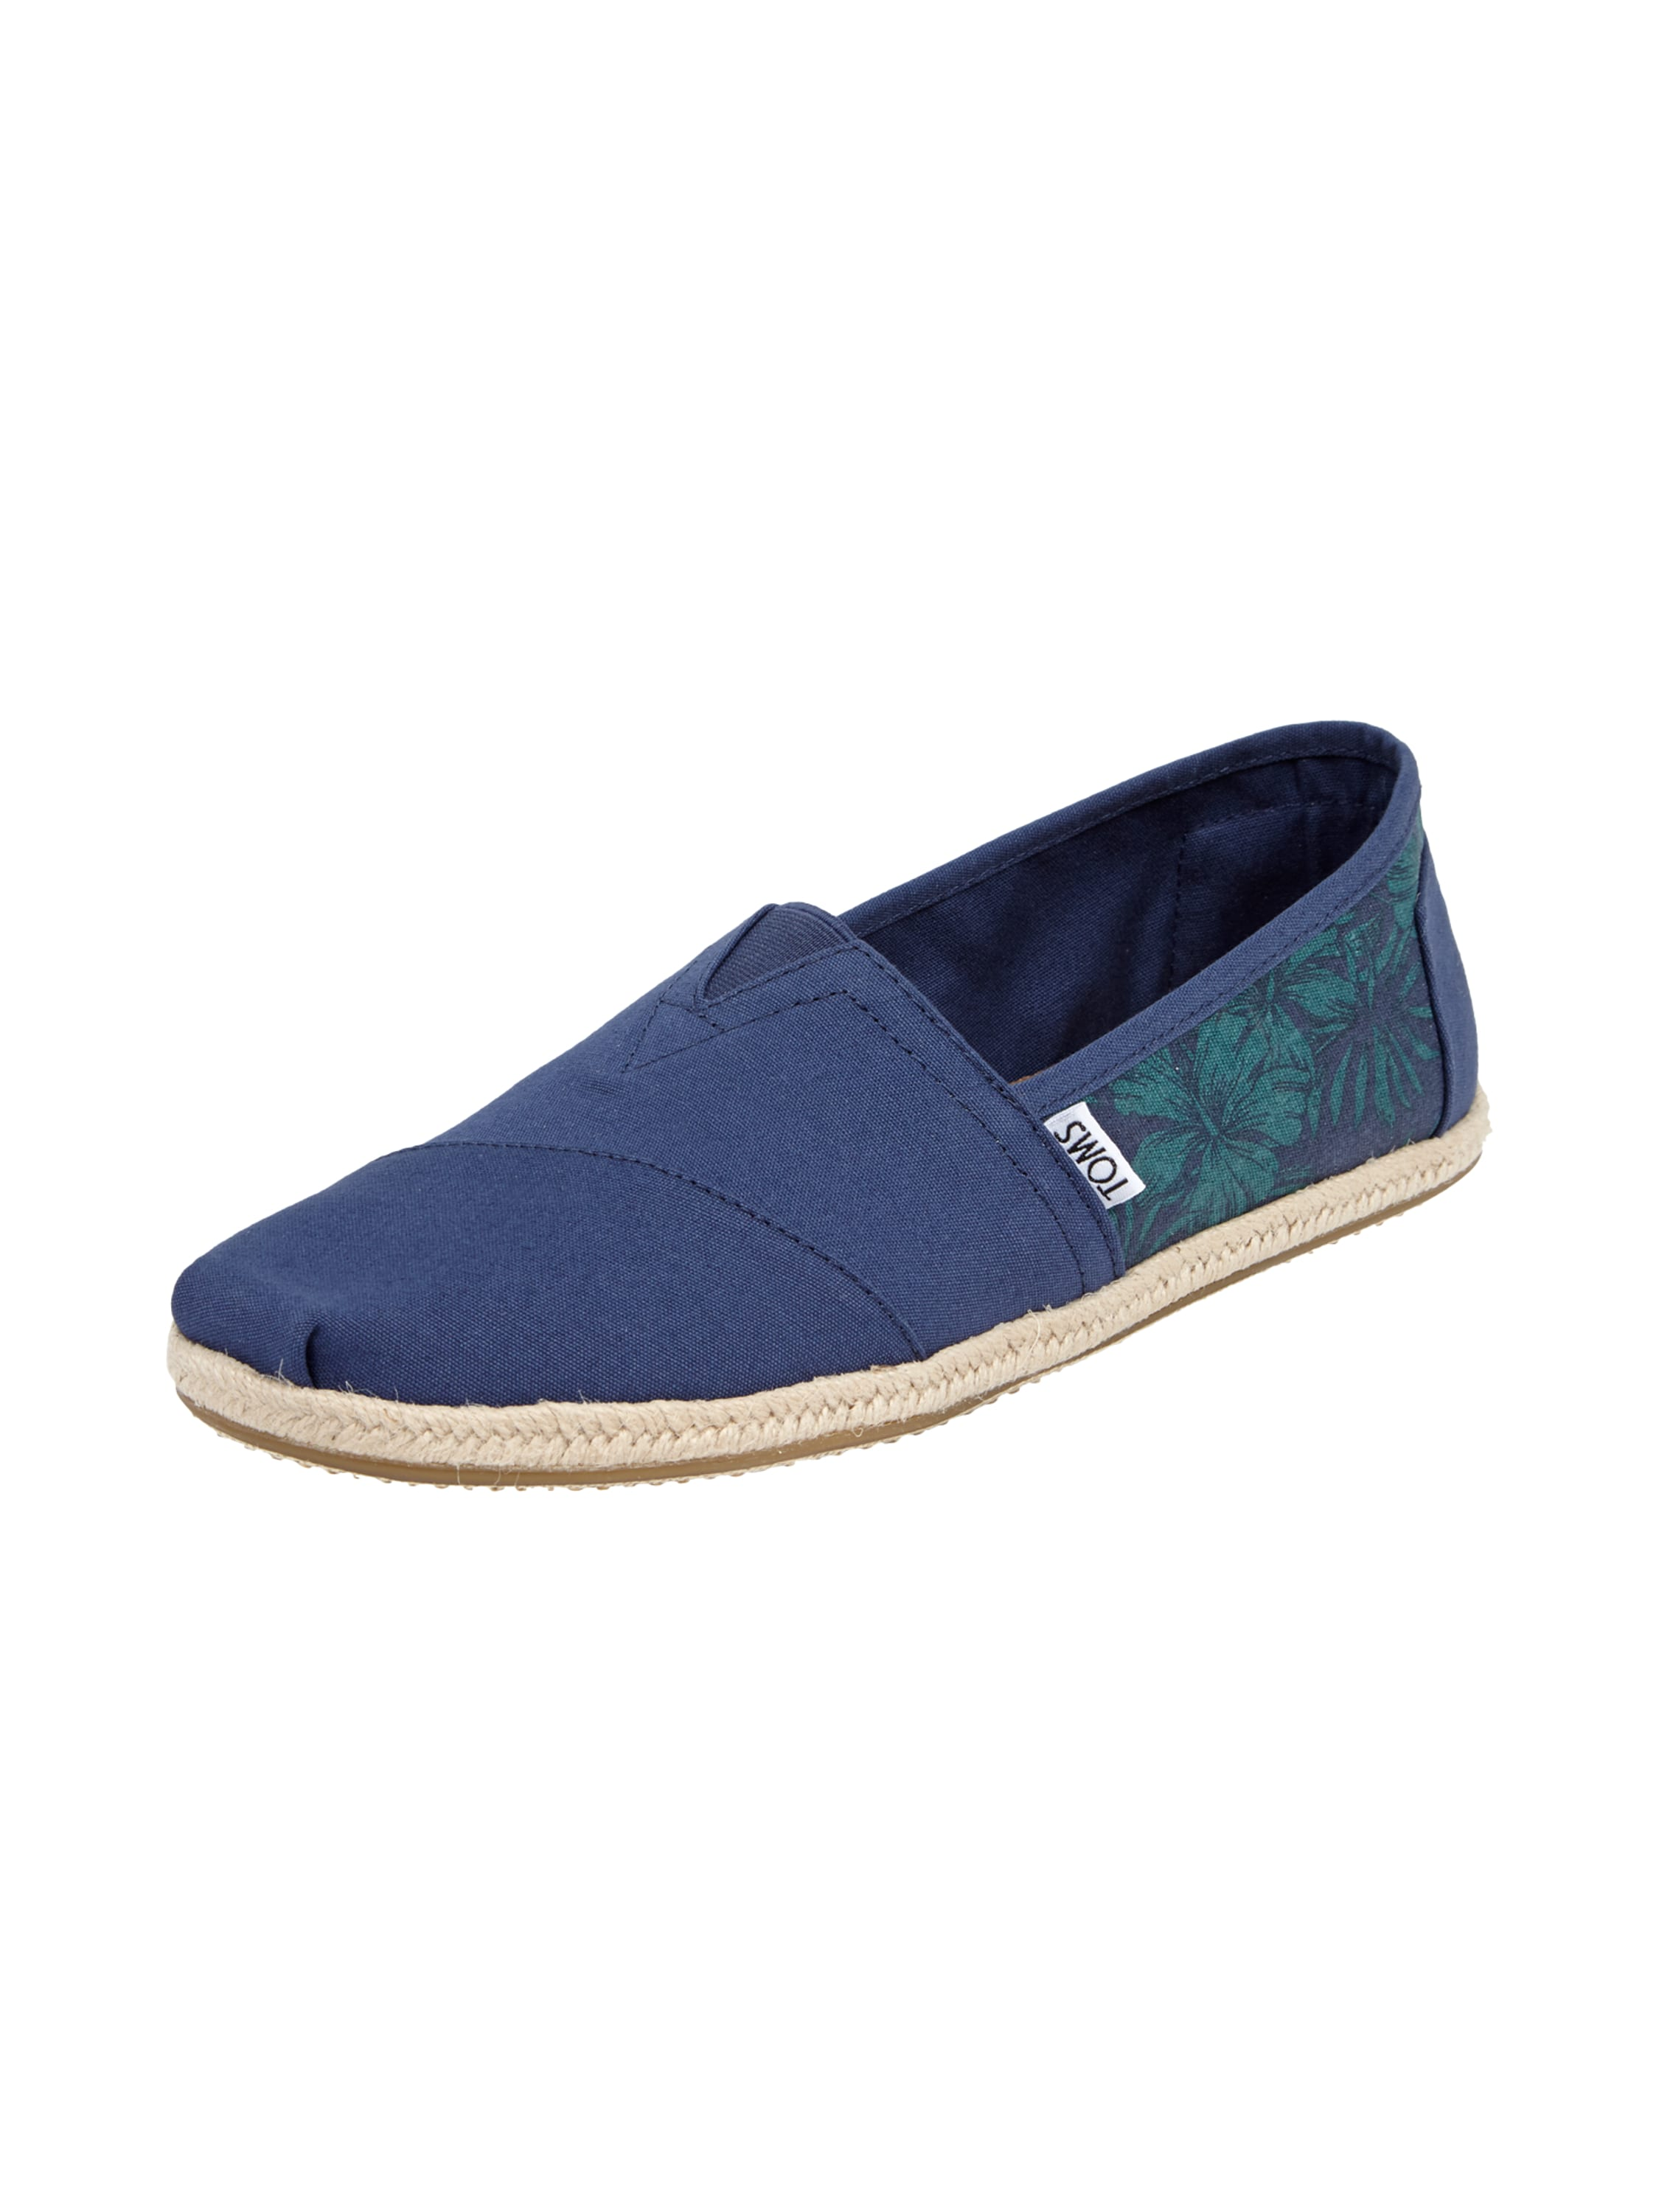 toms espadrilles mit hawaii muster in blau t rkis online entdecken 9446444 p c at online. Black Bedroom Furniture Sets. Home Design Ideas